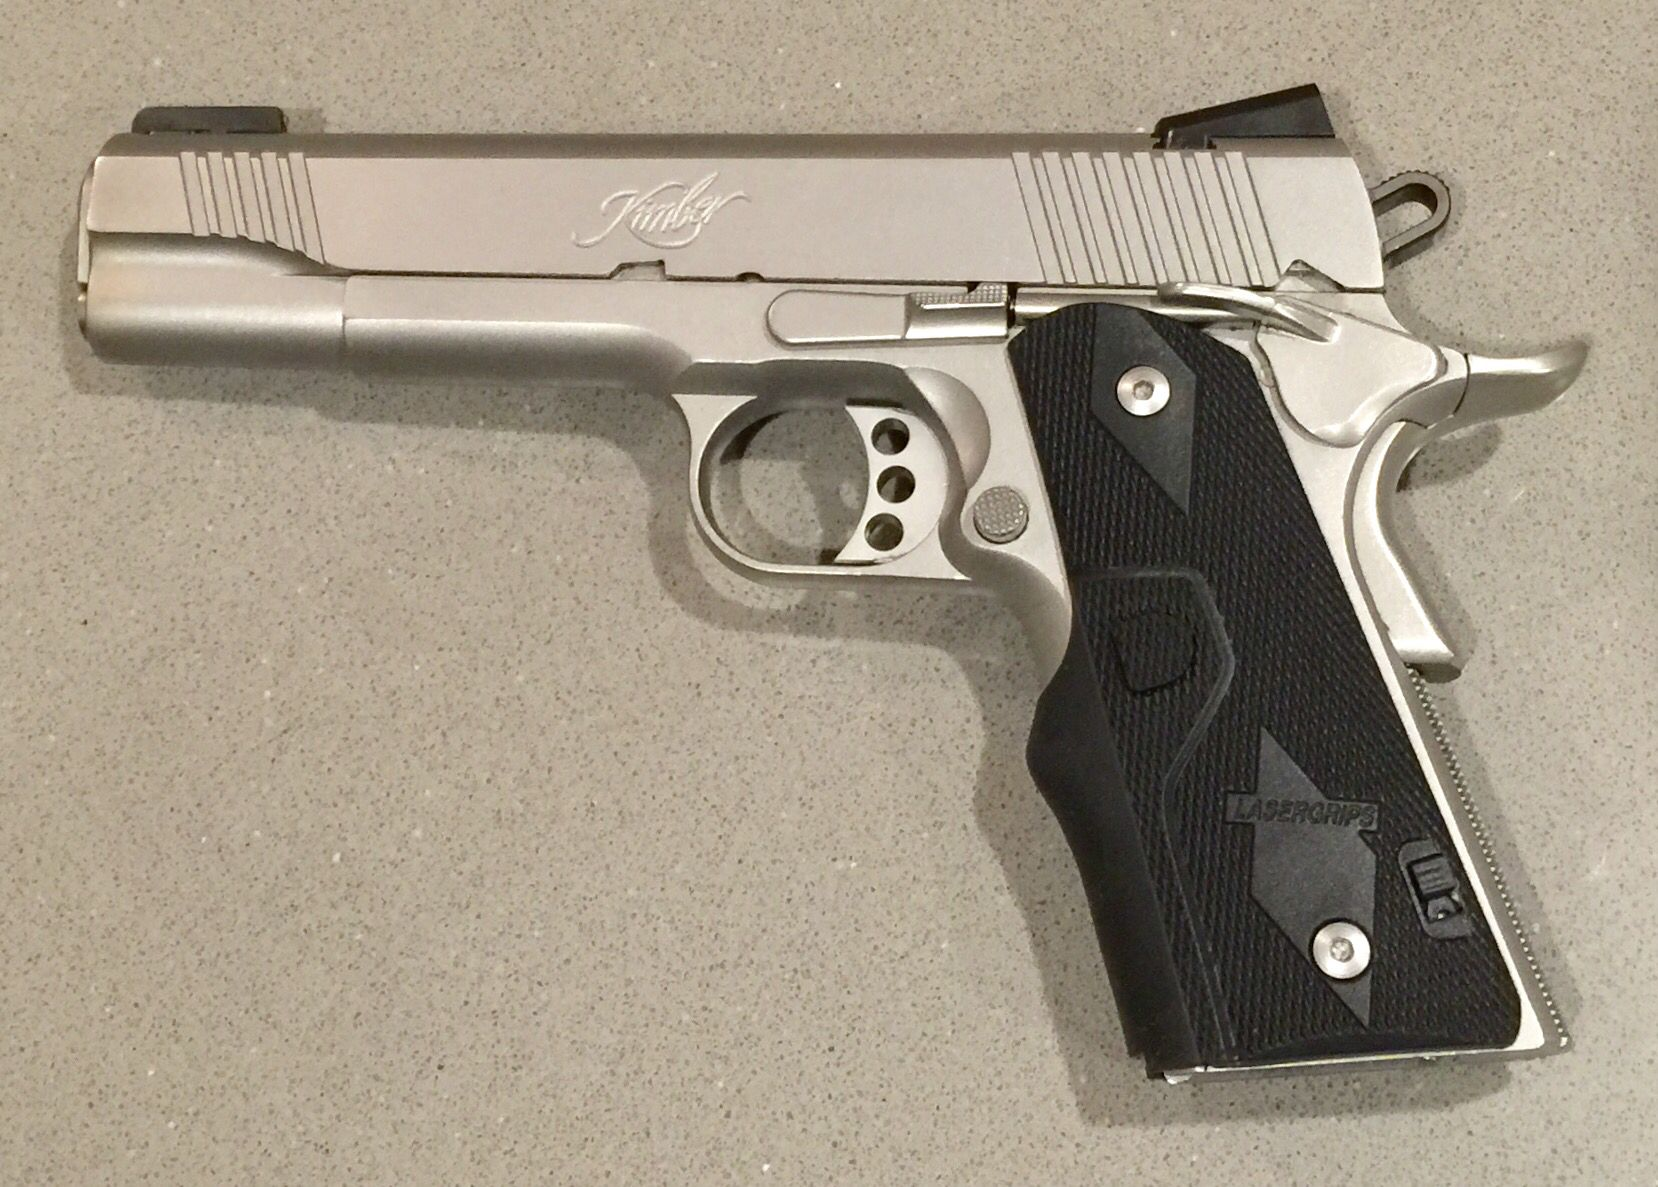 Just added the LG-301 Crimson Trace laser grip on my Kimber 1911